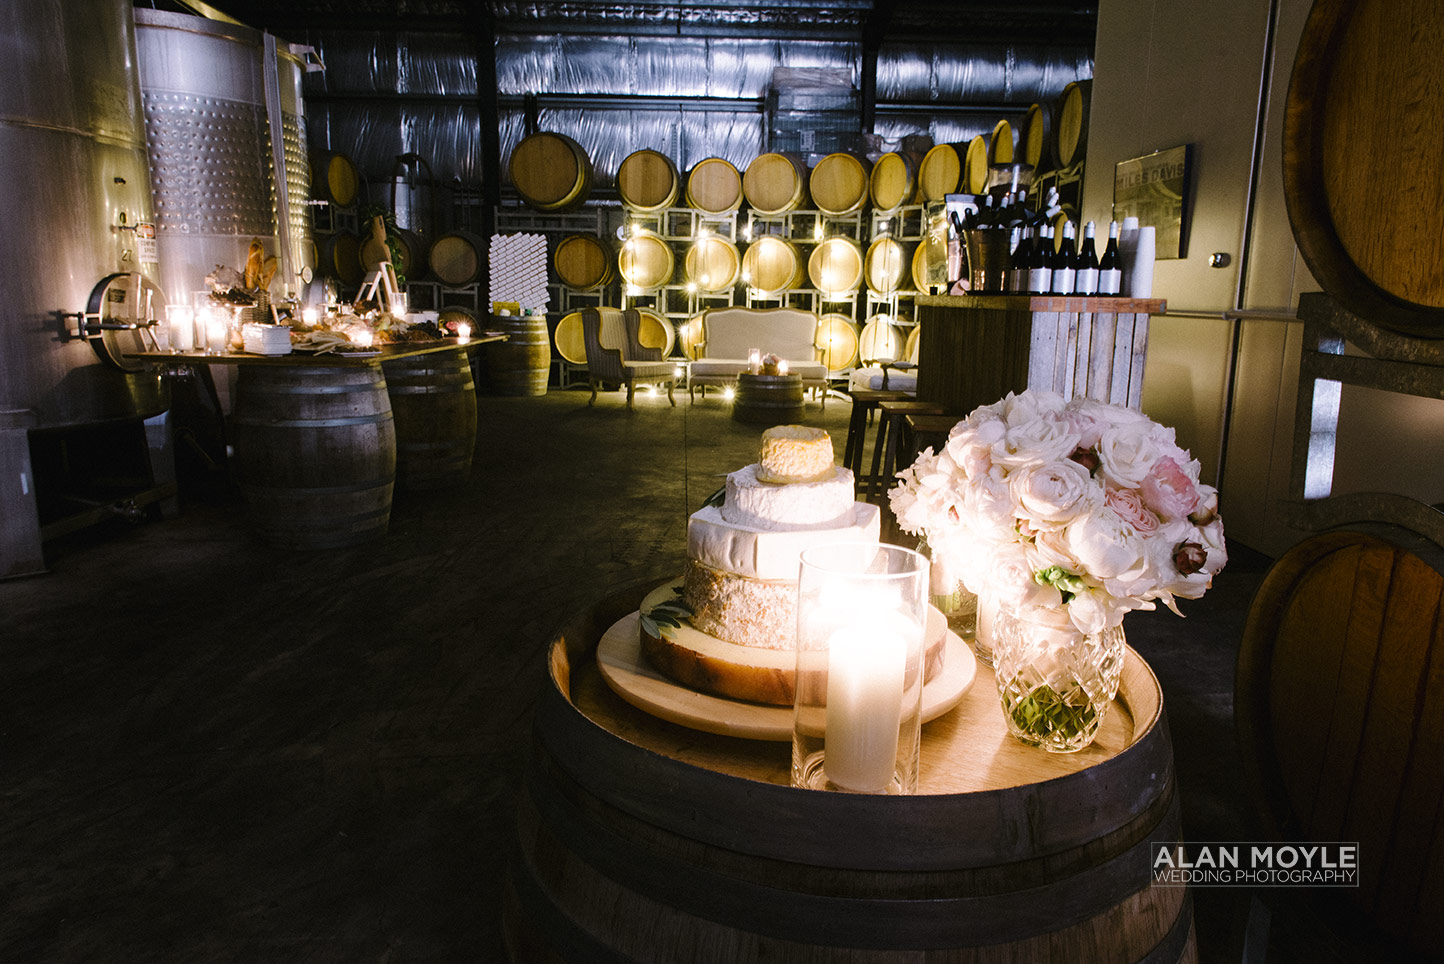 1405austin-378weddings_of_desire_melbourne_styling_event_geelong_alan_moyle_vineyard_winery_caligraphy_laura_sprout_hire_bayside.jpg